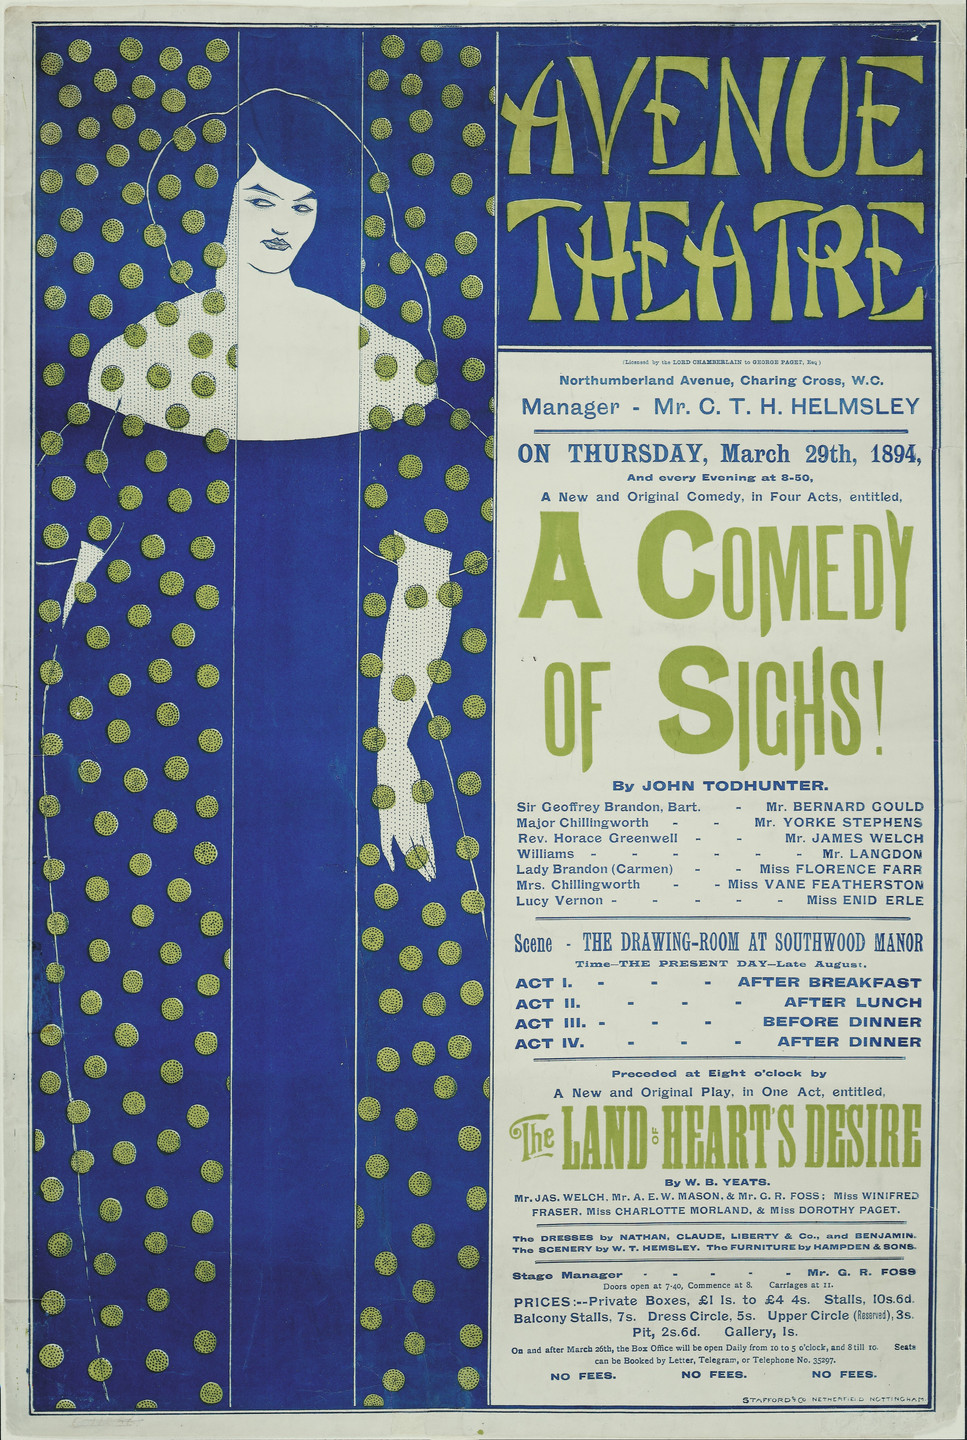 Aubrey Beardsley. Avenue Theater, A Comedy of Sighs!. 1894